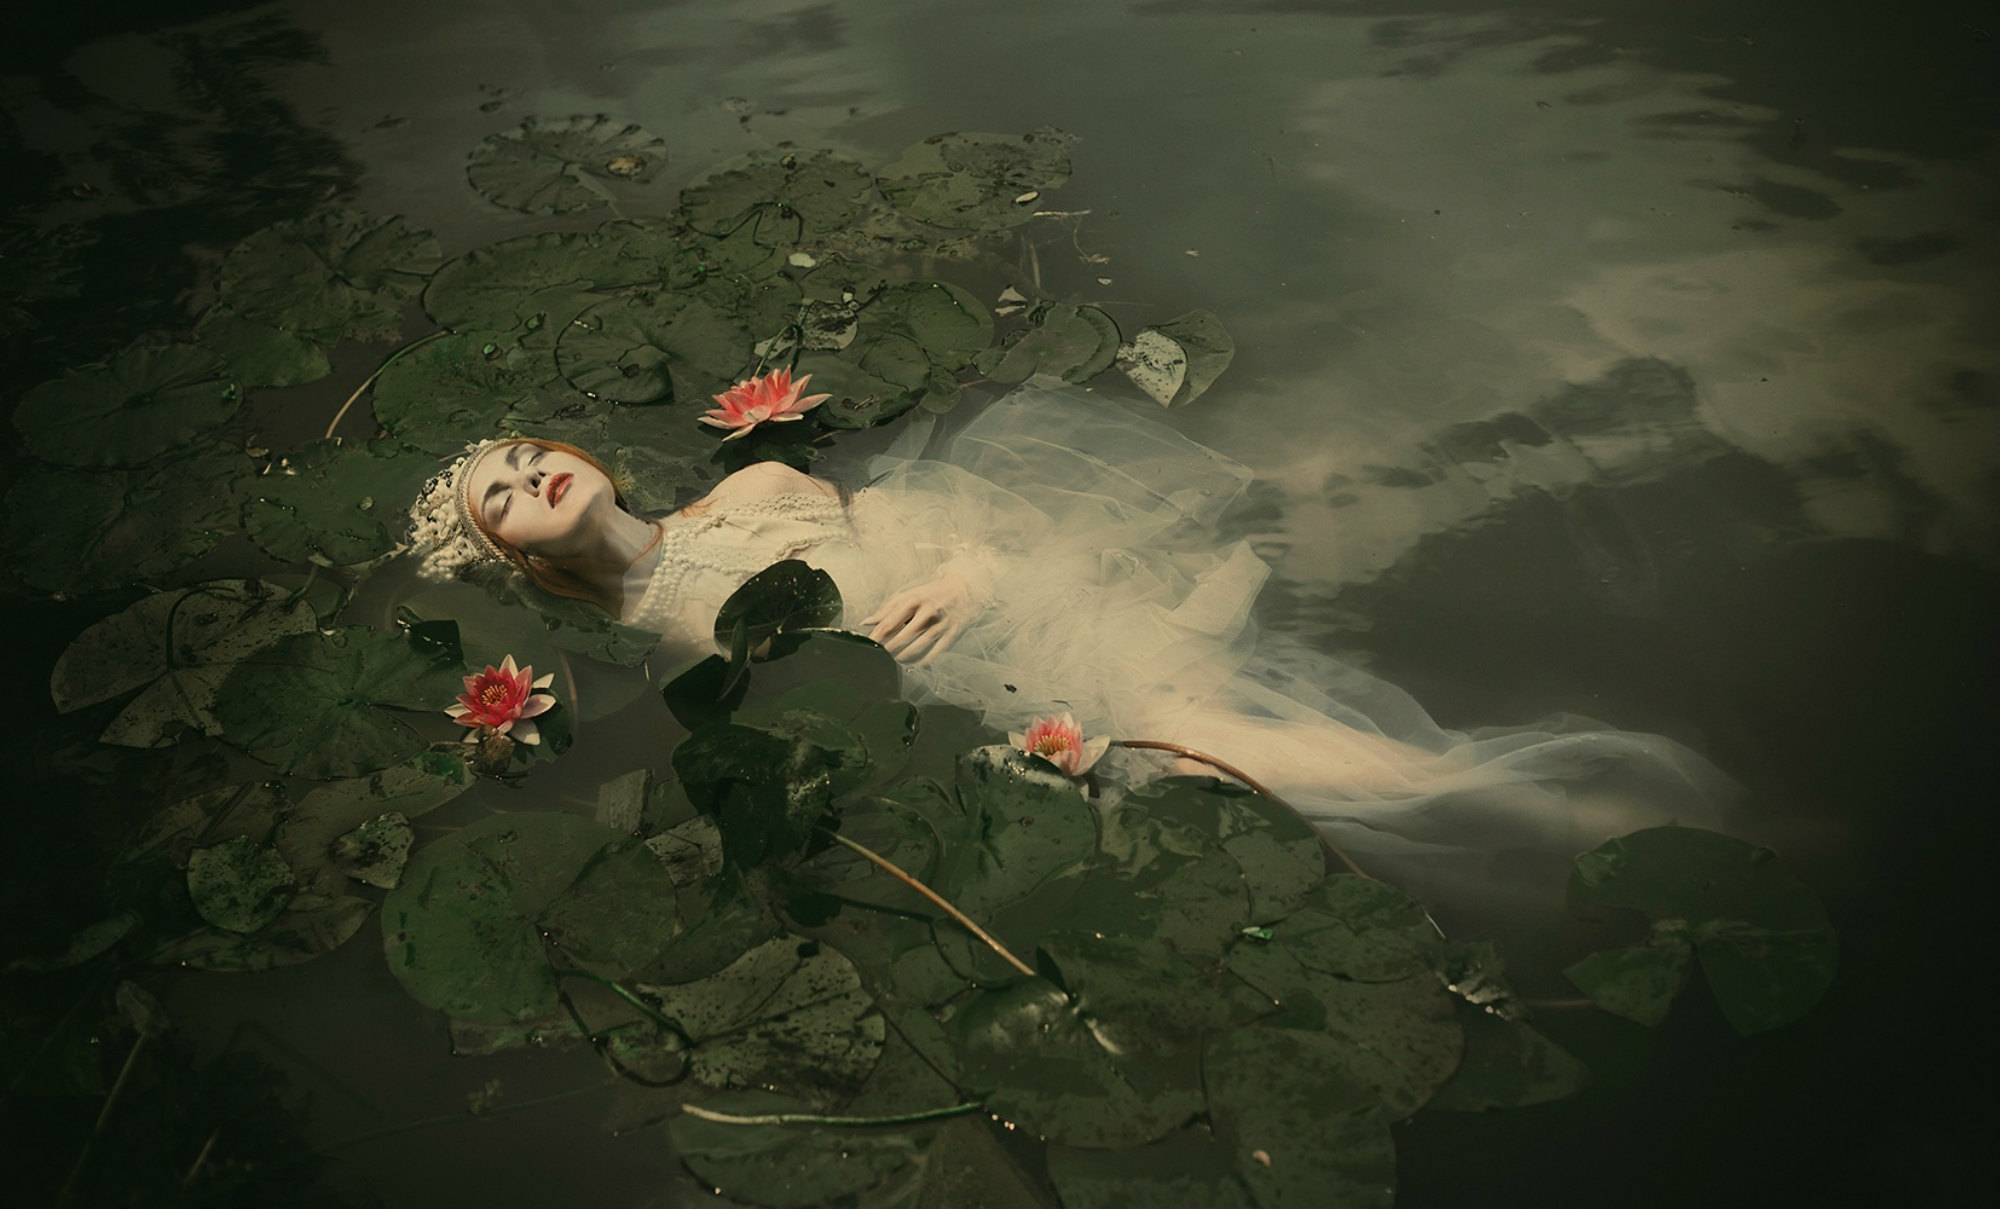 Ophelia Dreams Away Her Life: Photography by Dorota Gorecka